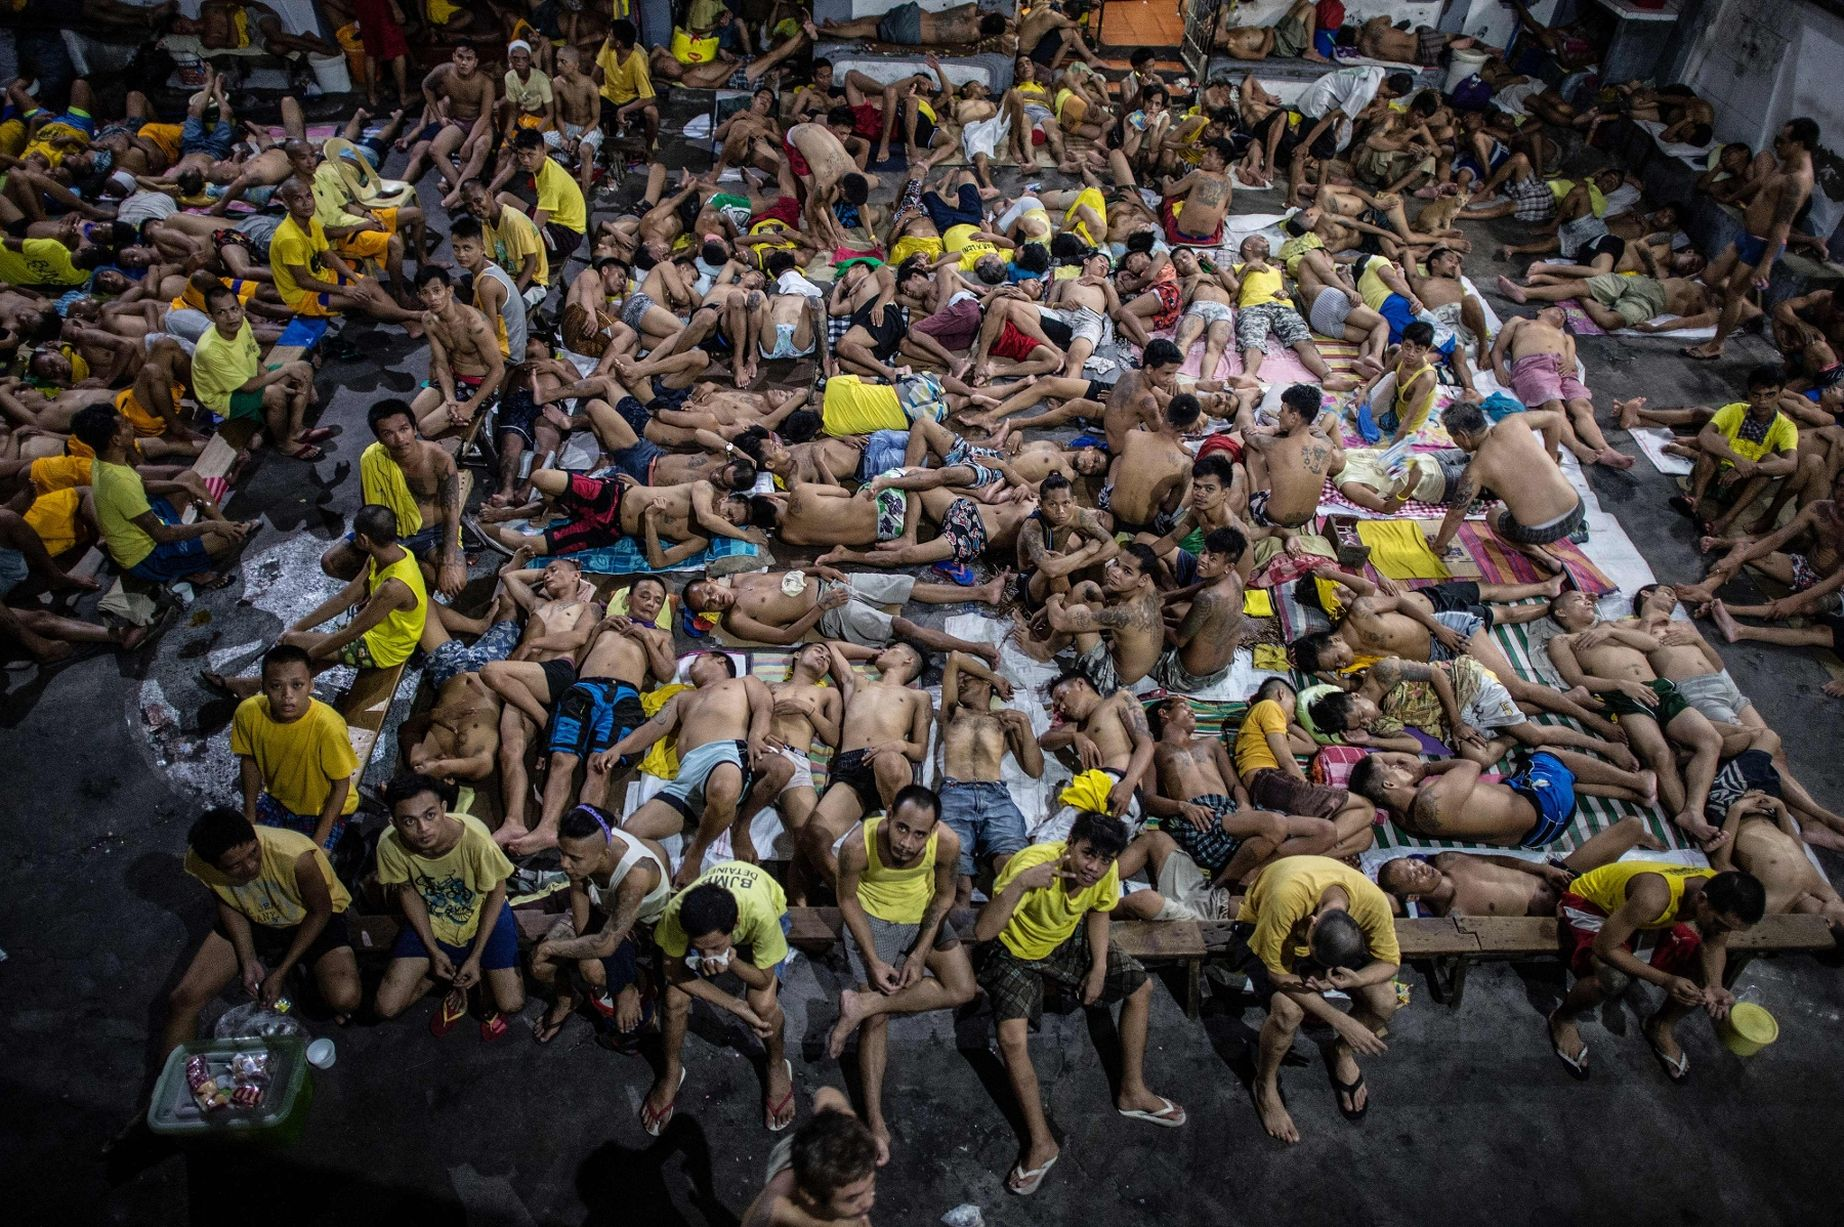 inmates at Quezon City Jail in The Philippines